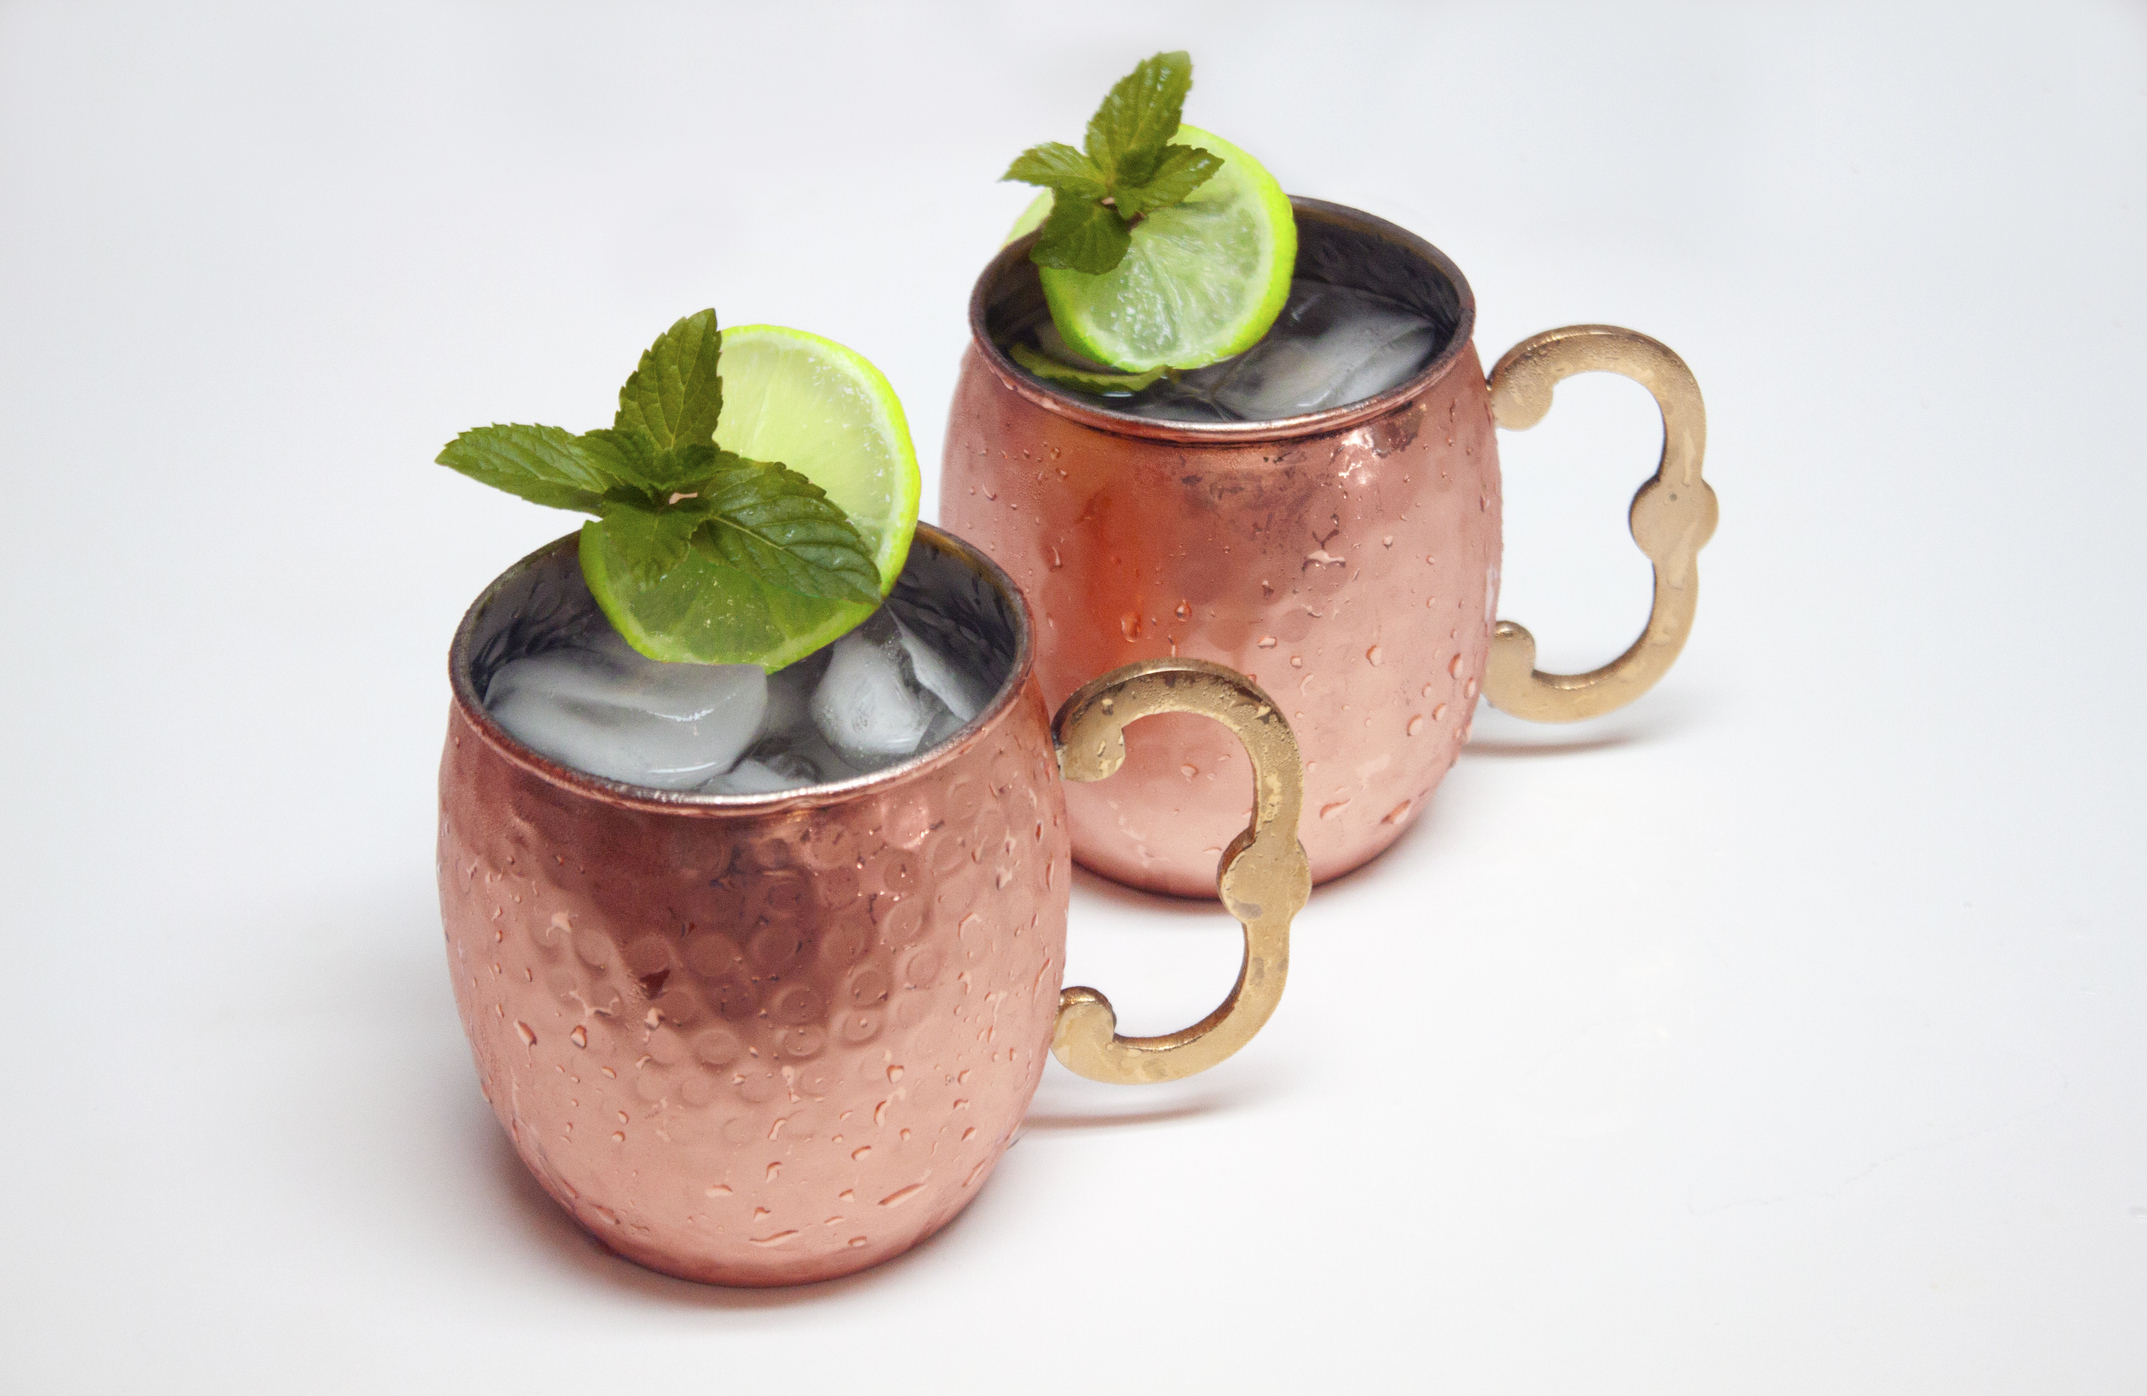 So, those cute copper Moscow Mule mugs might not be safe to drink from